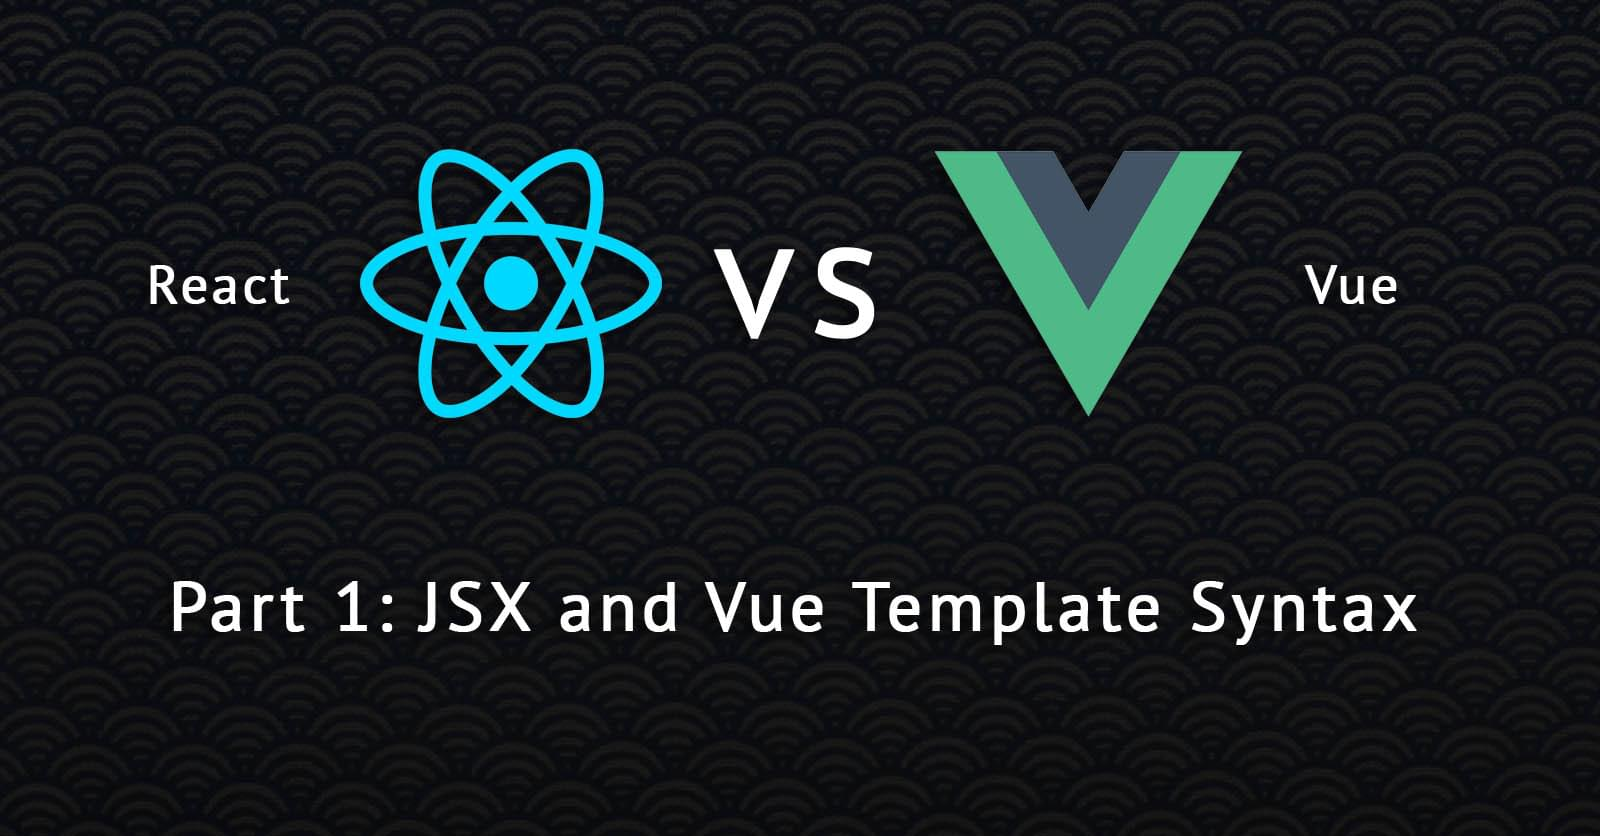 React vs Vue pt. 1: JSX and Vue Template Syntax